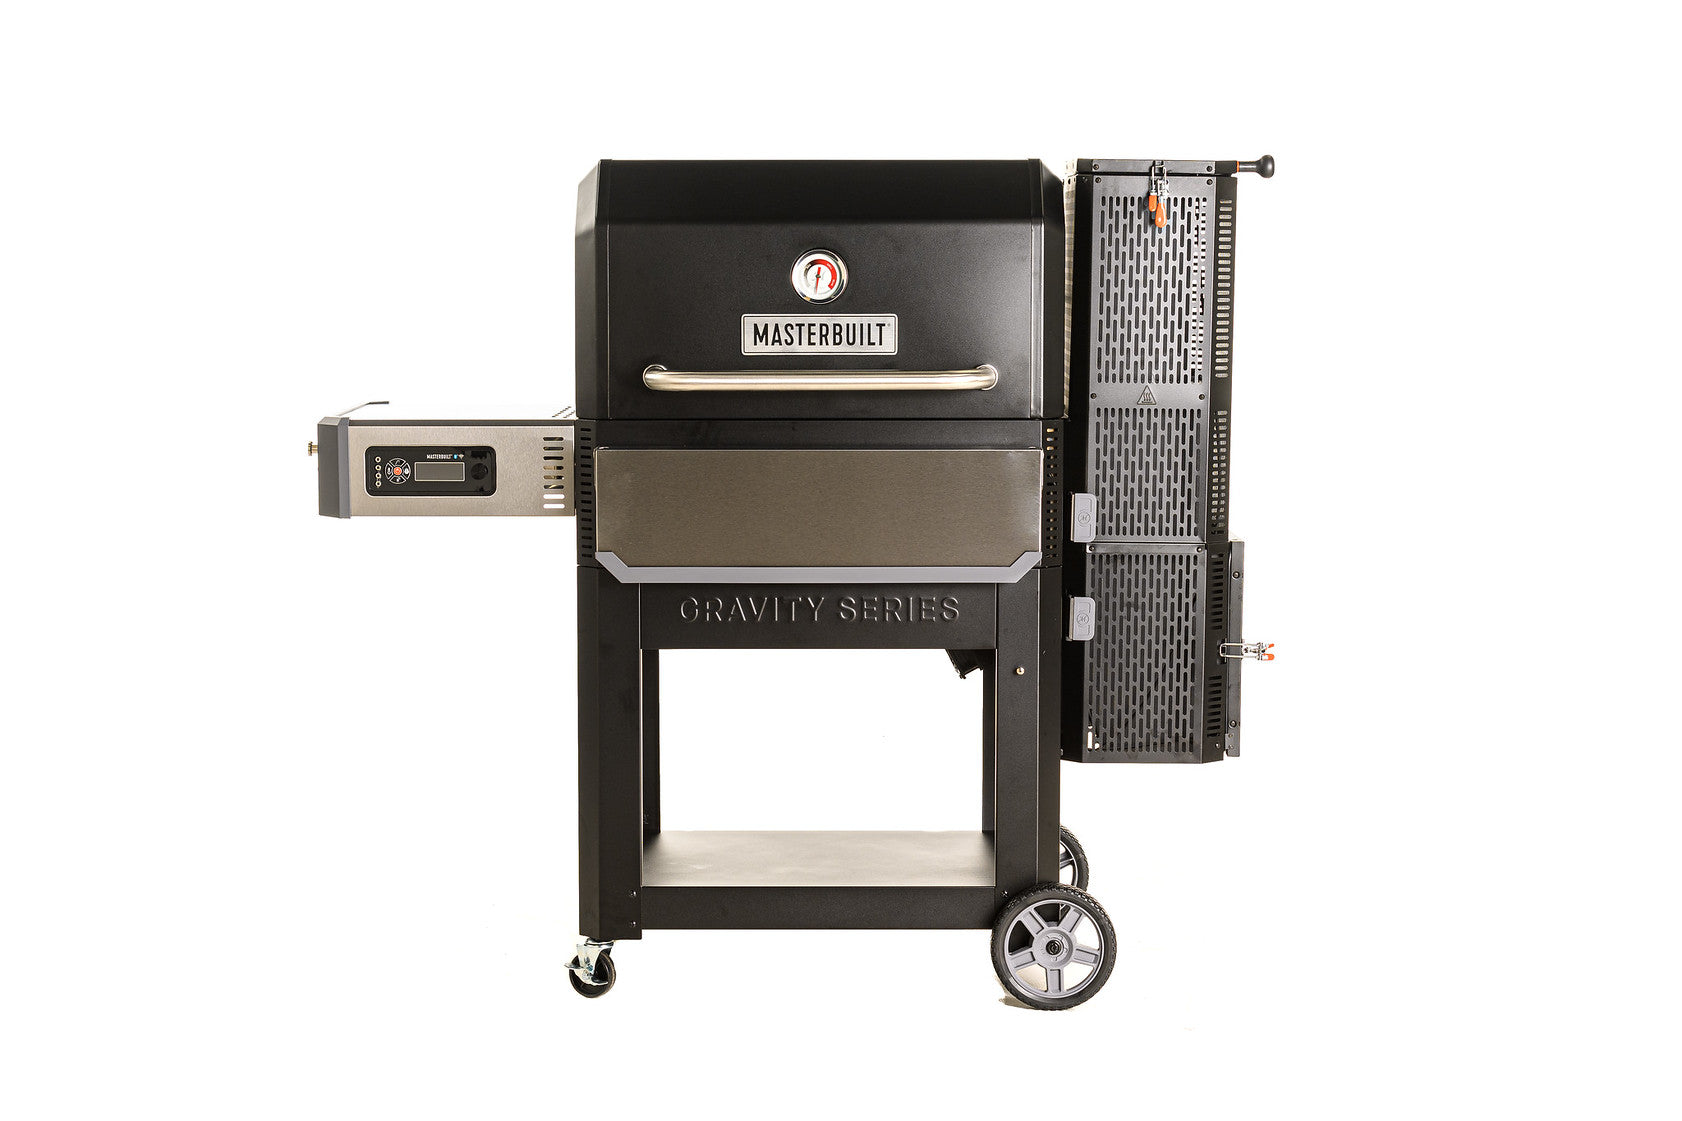 "Masterbuilt 1050 30"" Gravity Series Digital Charcoal Grill and Smoker"